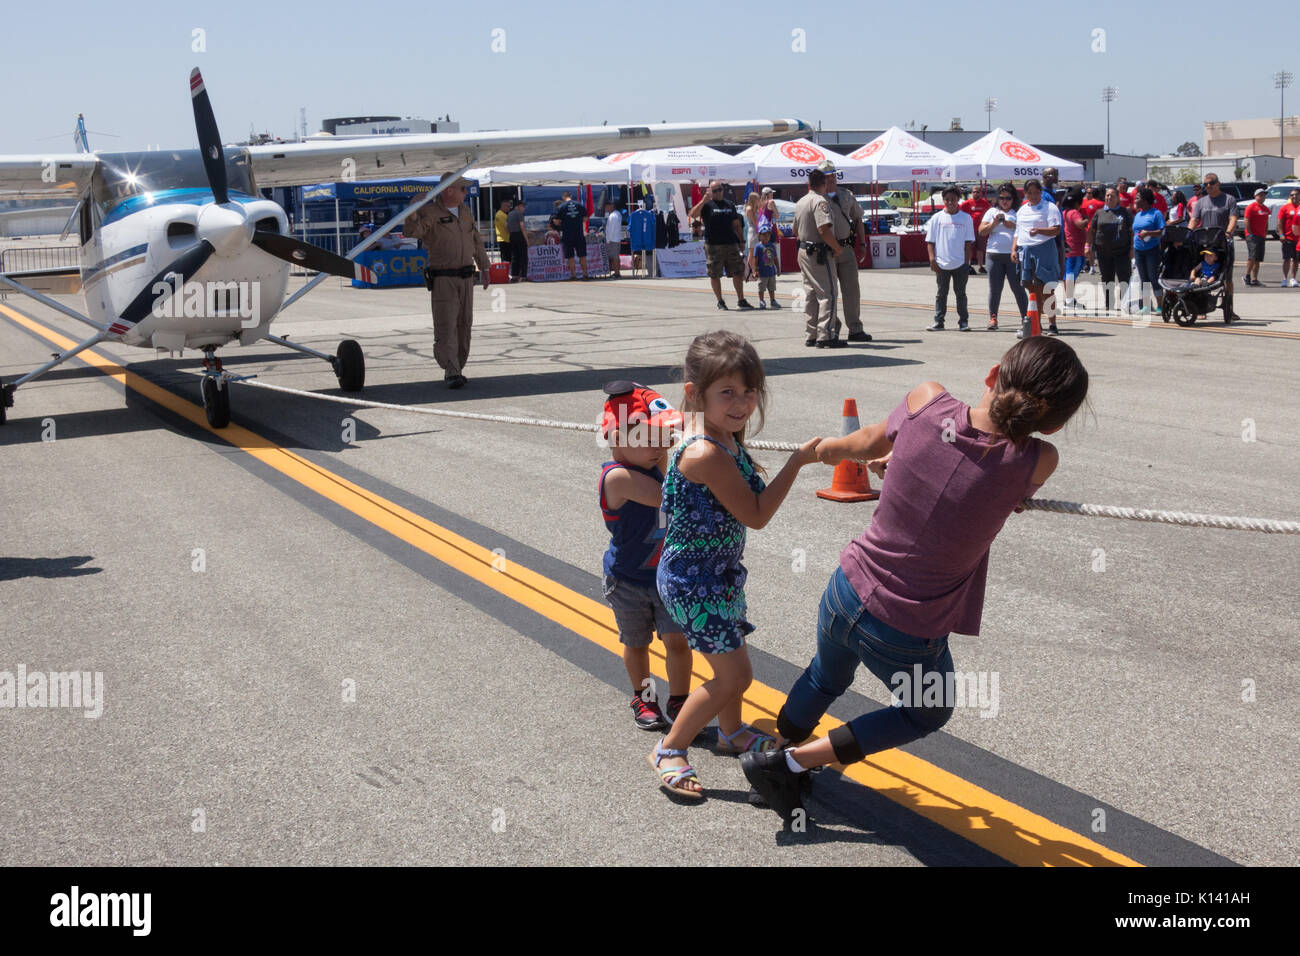 August 19, 2017 - Children have a plane pull of their own at the Special Olympics Southern California Plane Pull at the Long Beach Airport in Long Bea - Stock Image